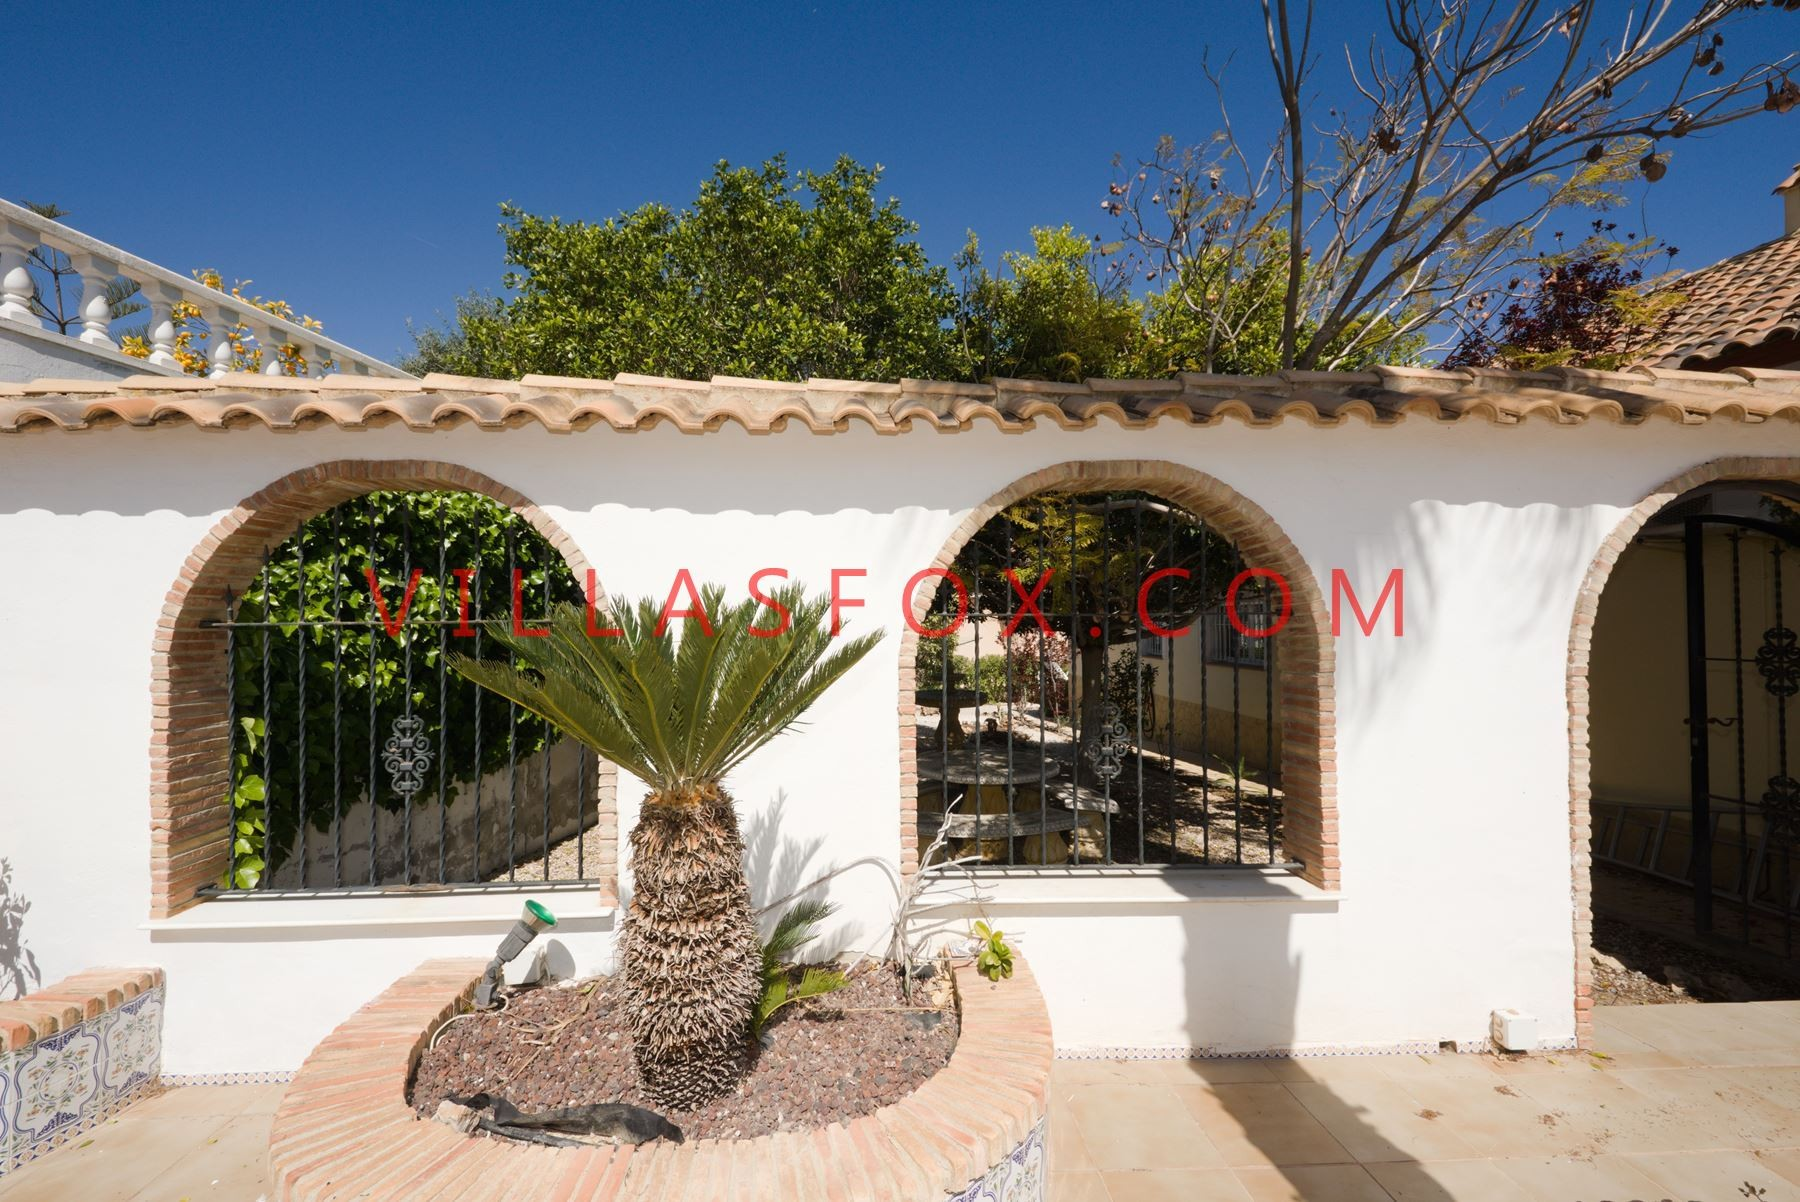 Large 4-bedroom villa on corner plot with garage, pool, sauna, Torrestrella, San Miguel de Salinas